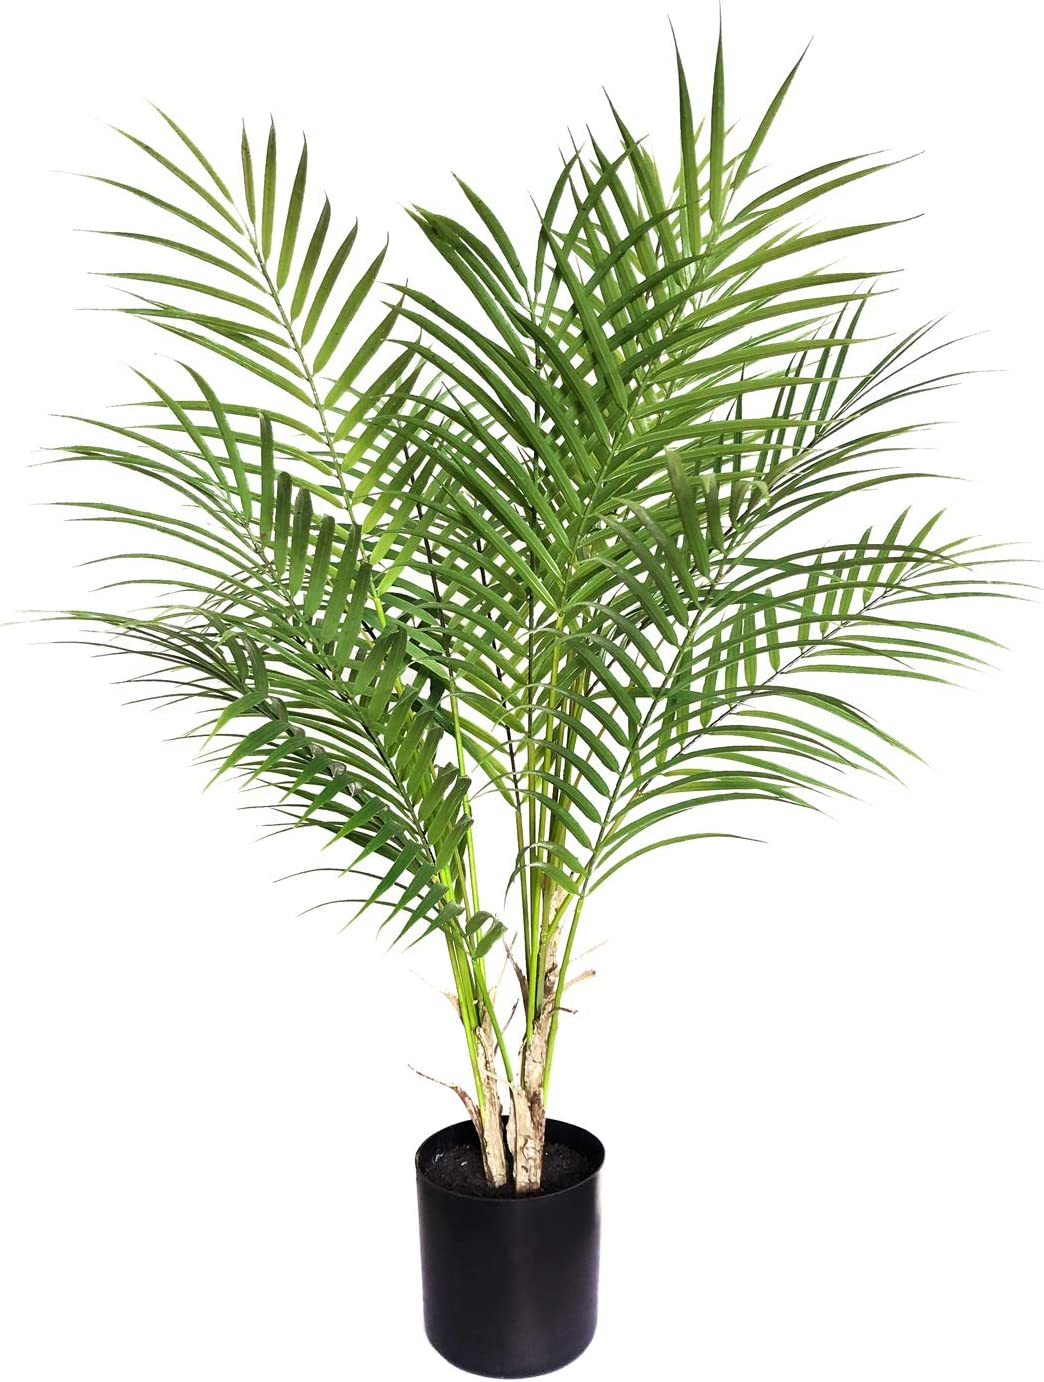 BESAMENATURE Artificial Paradise Palm Tree Plant, Indoor Artificial Mini Palm Tree, 30 inches Tall, Green